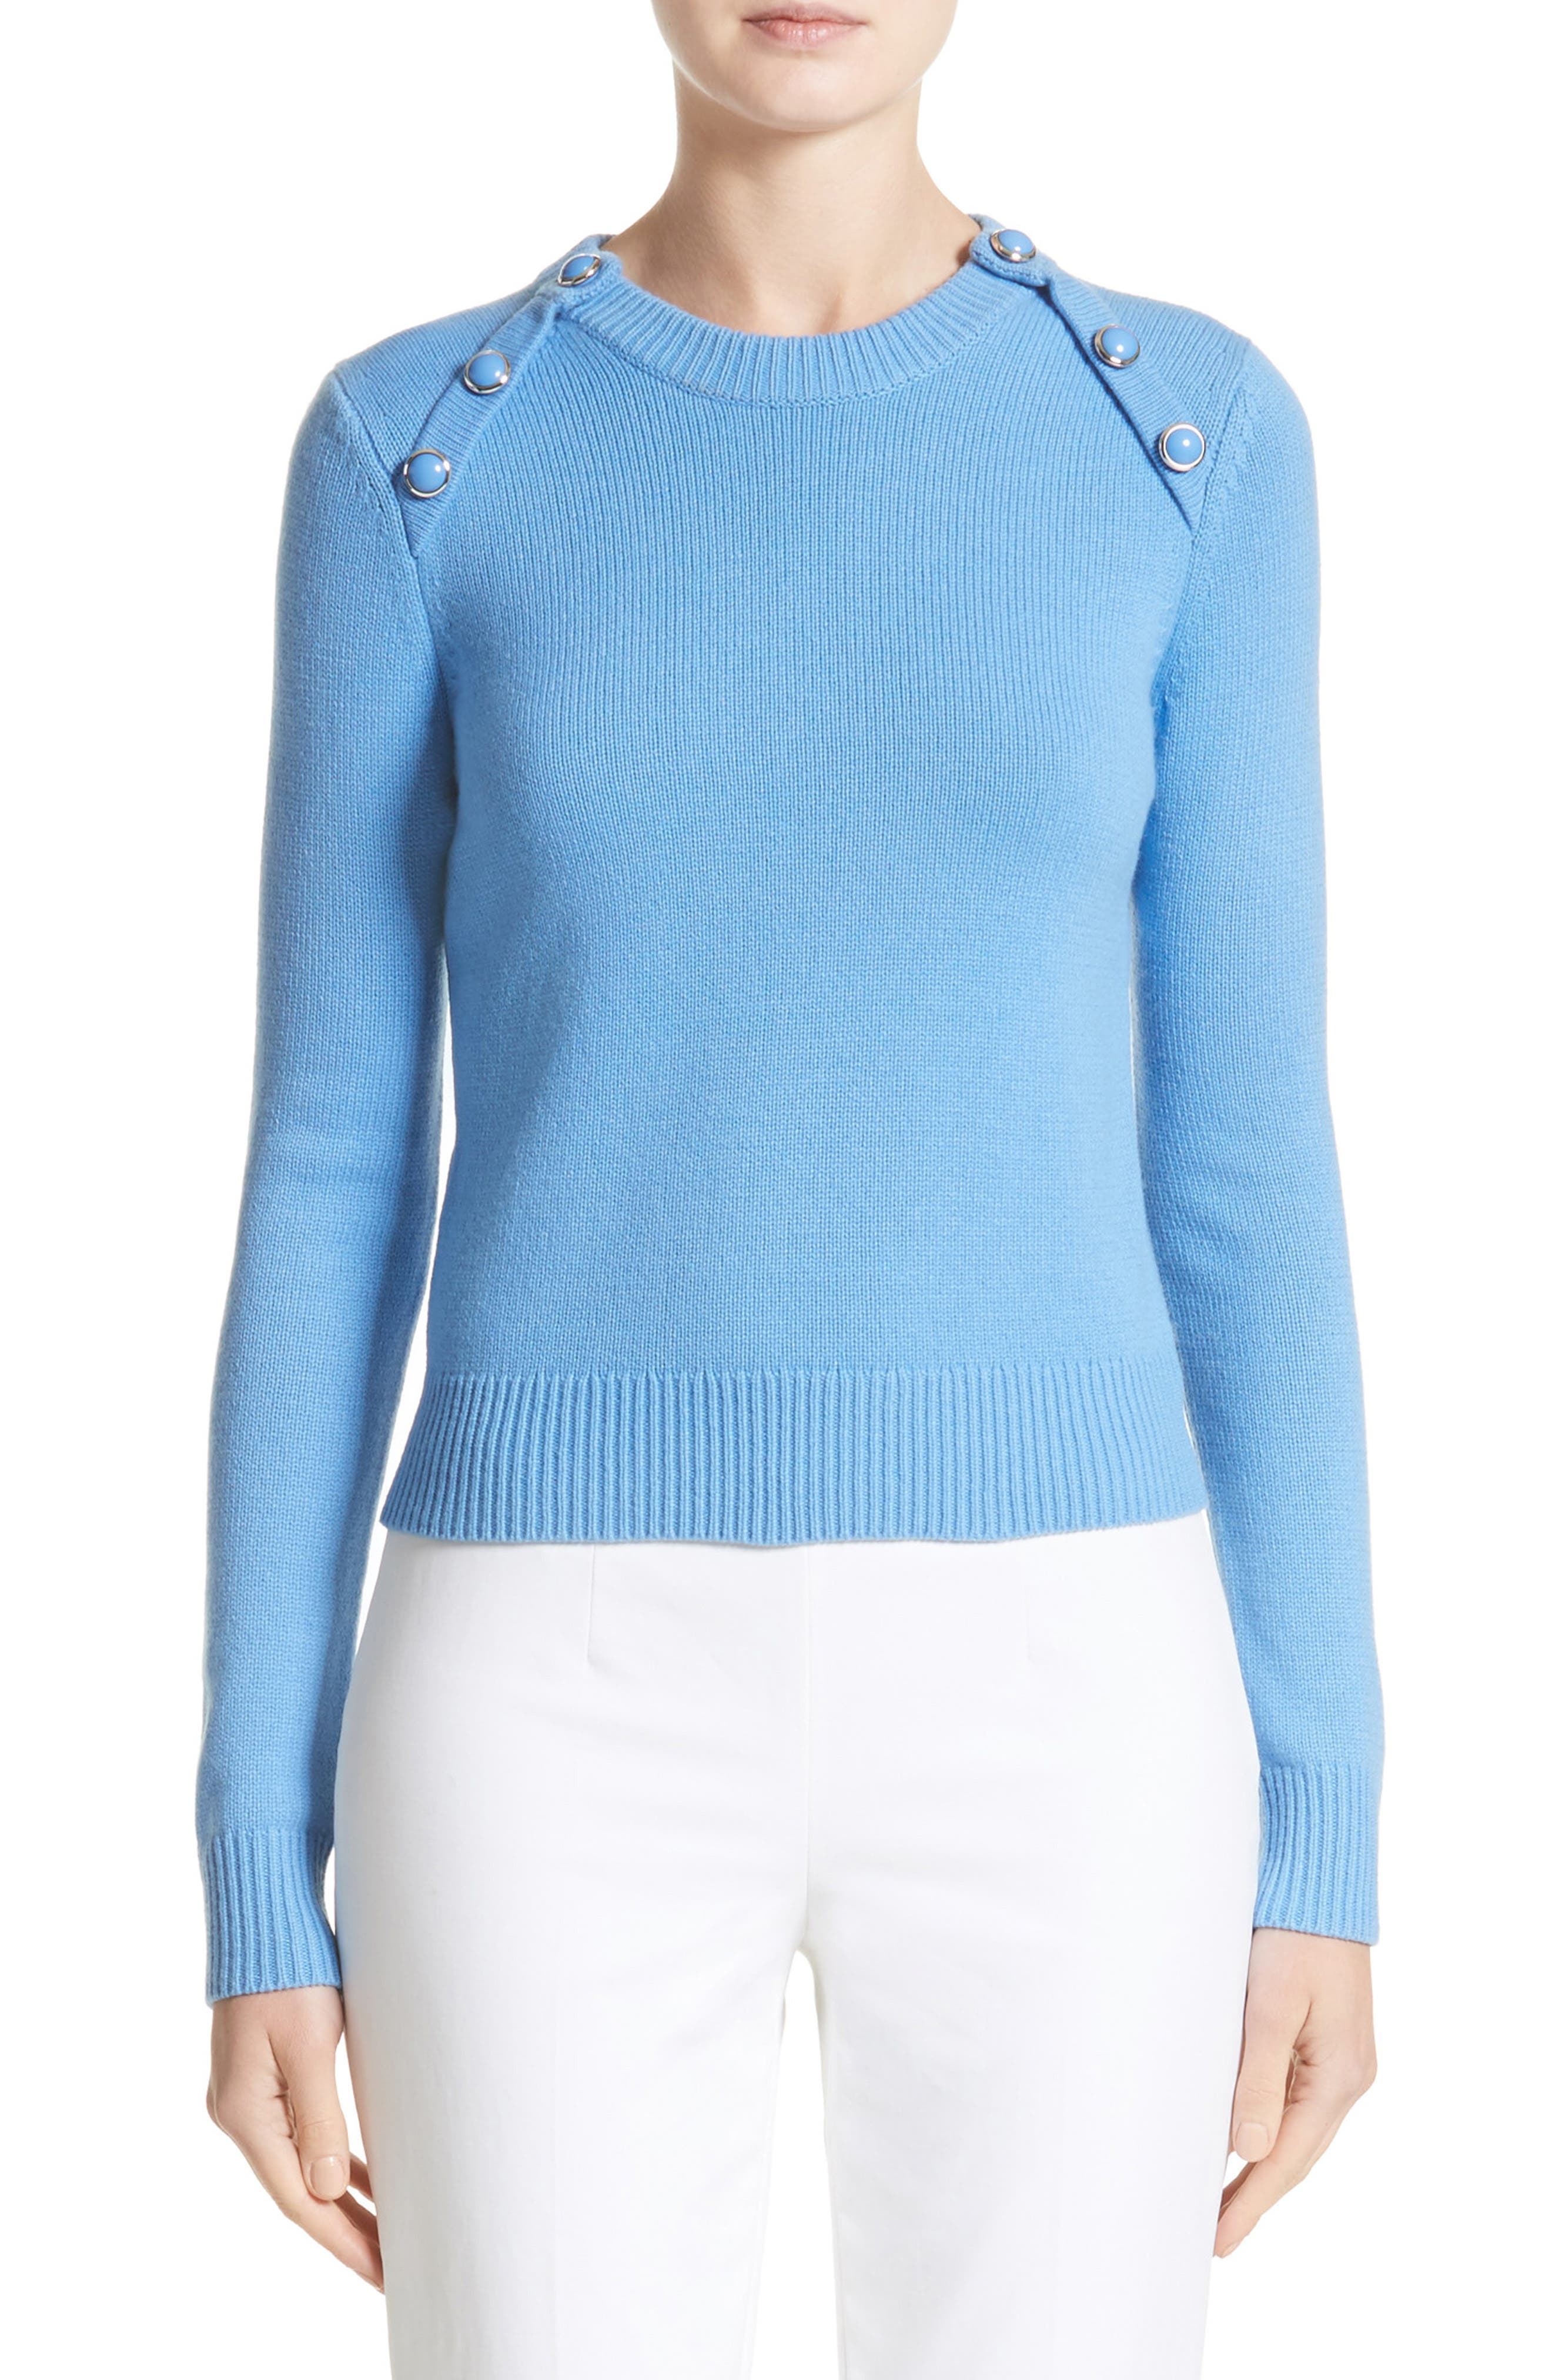 Raglan Cashmere Sweater,                             Main thumbnail 1, color,                             495